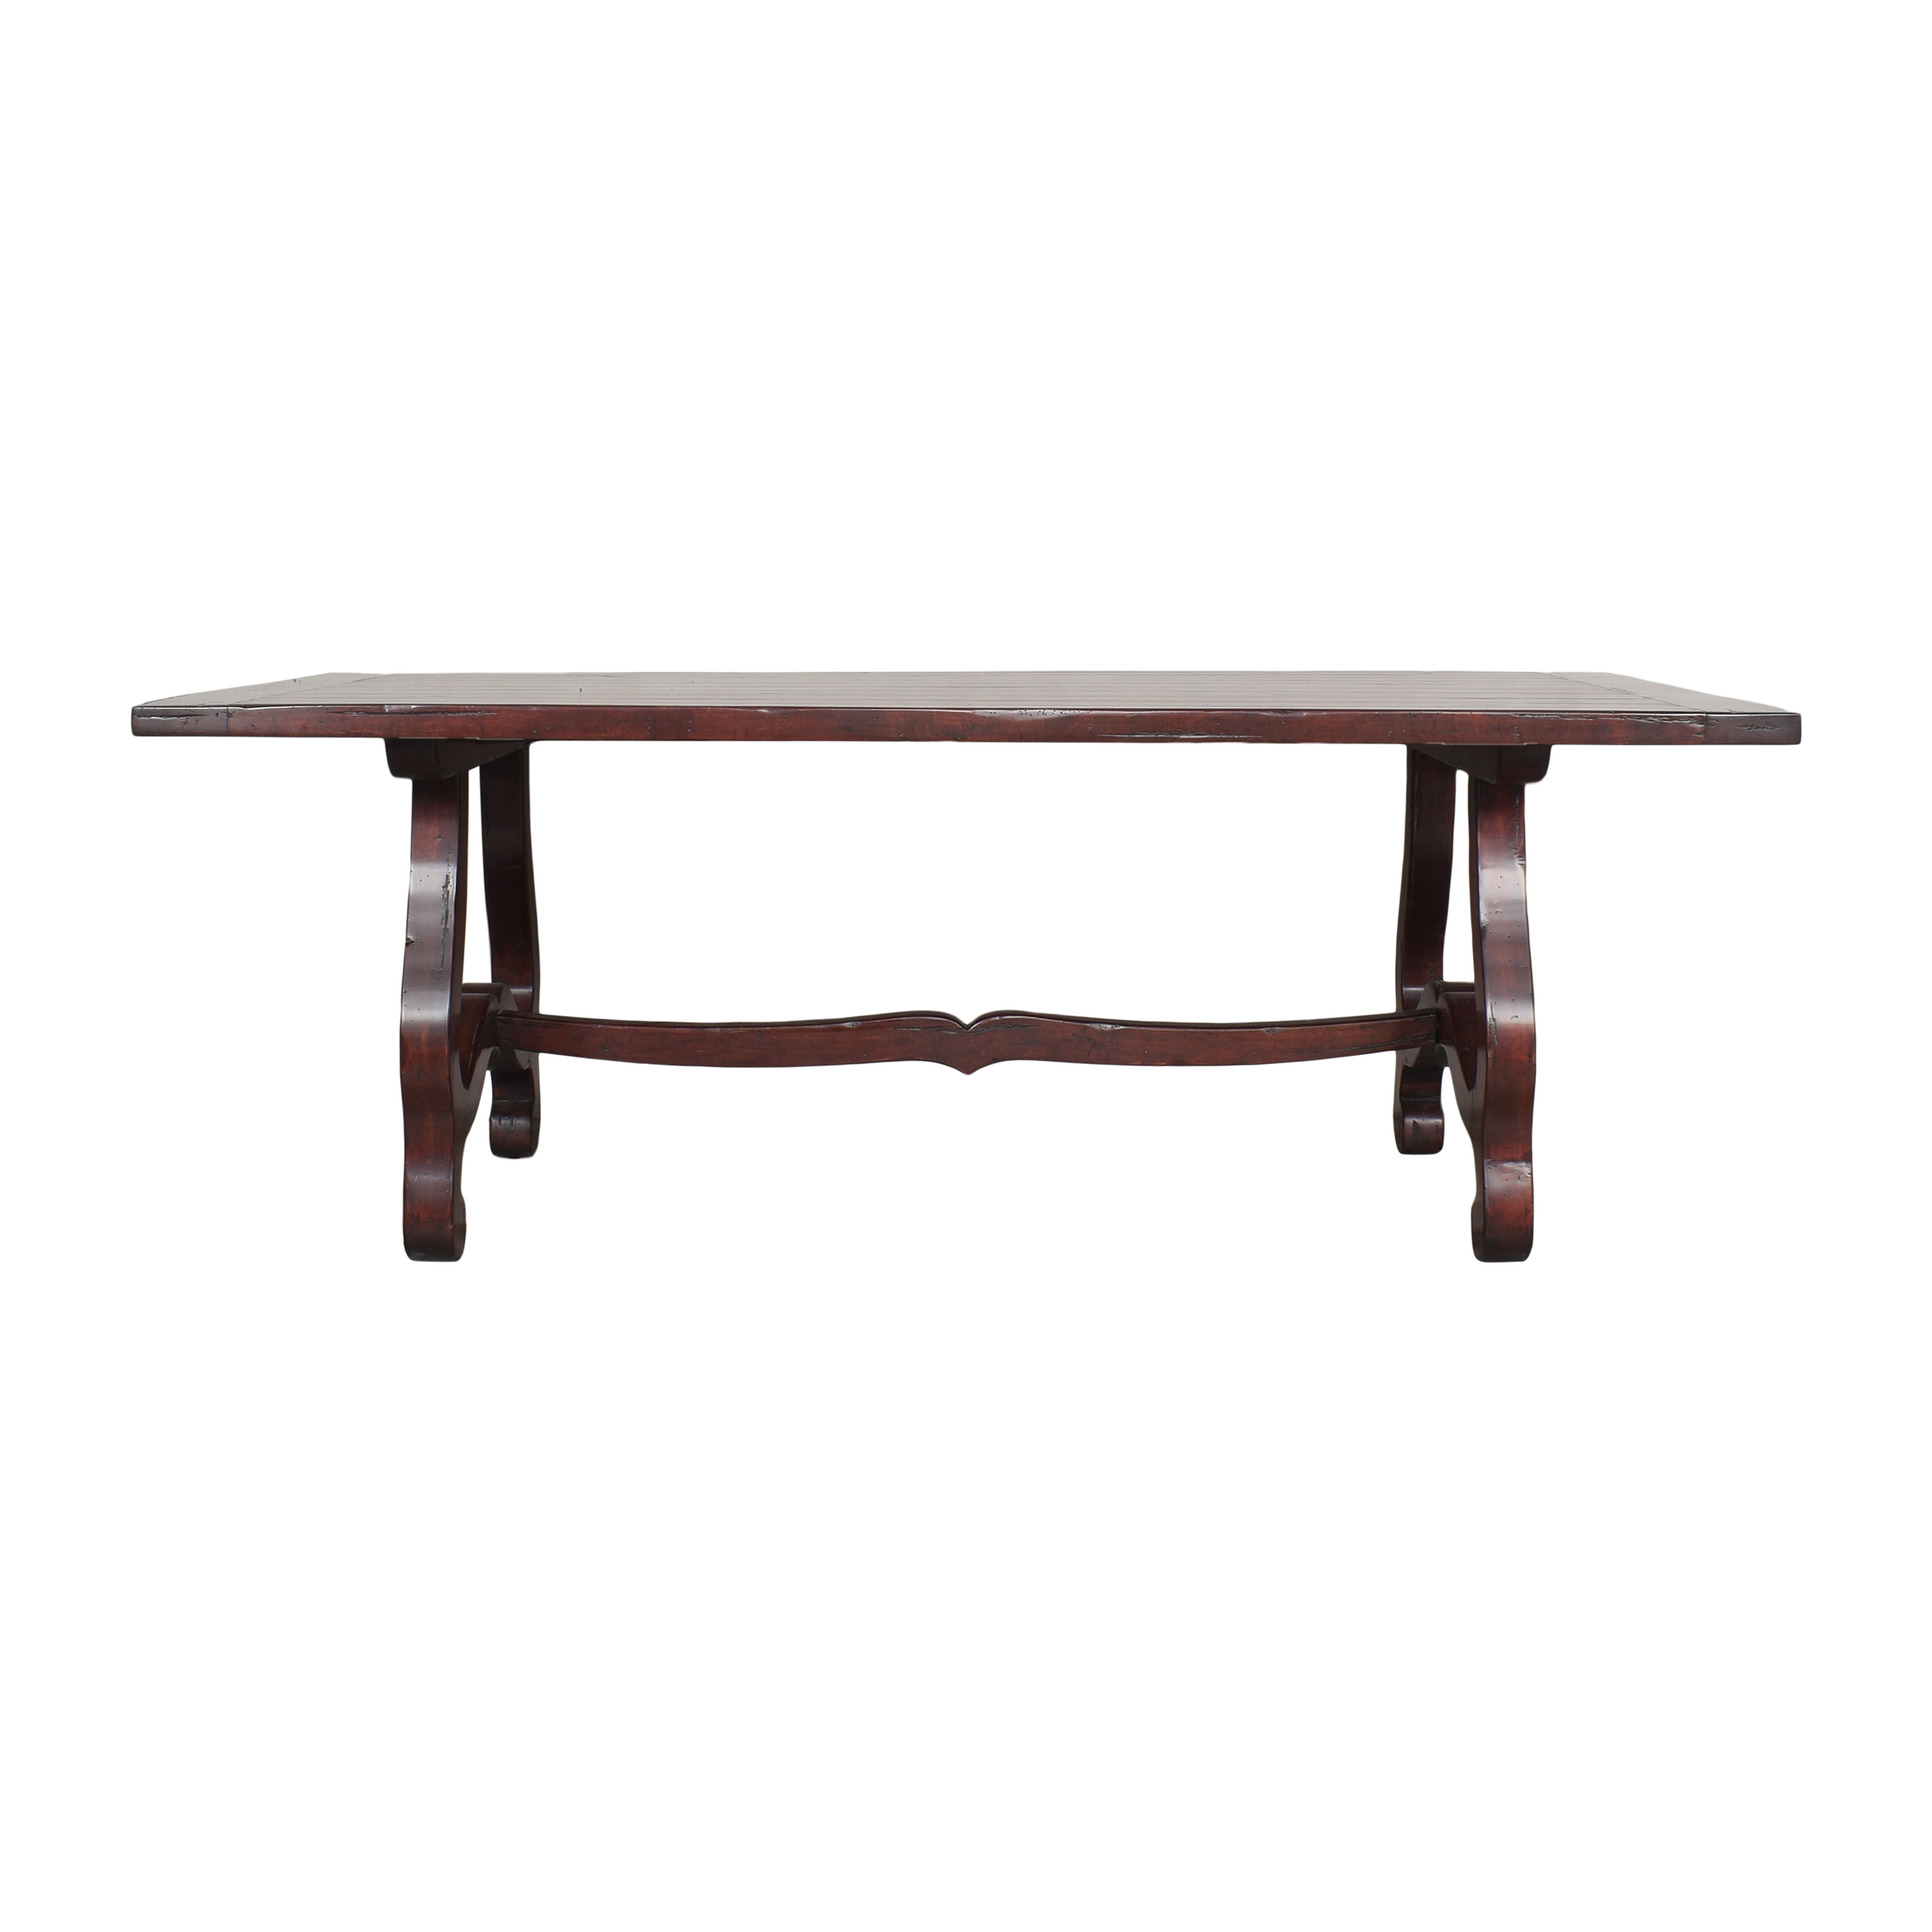 buy Guy Chaddock & Co Country English Trestle Dining Table Guy Chaddock & Co. Dinner Tables